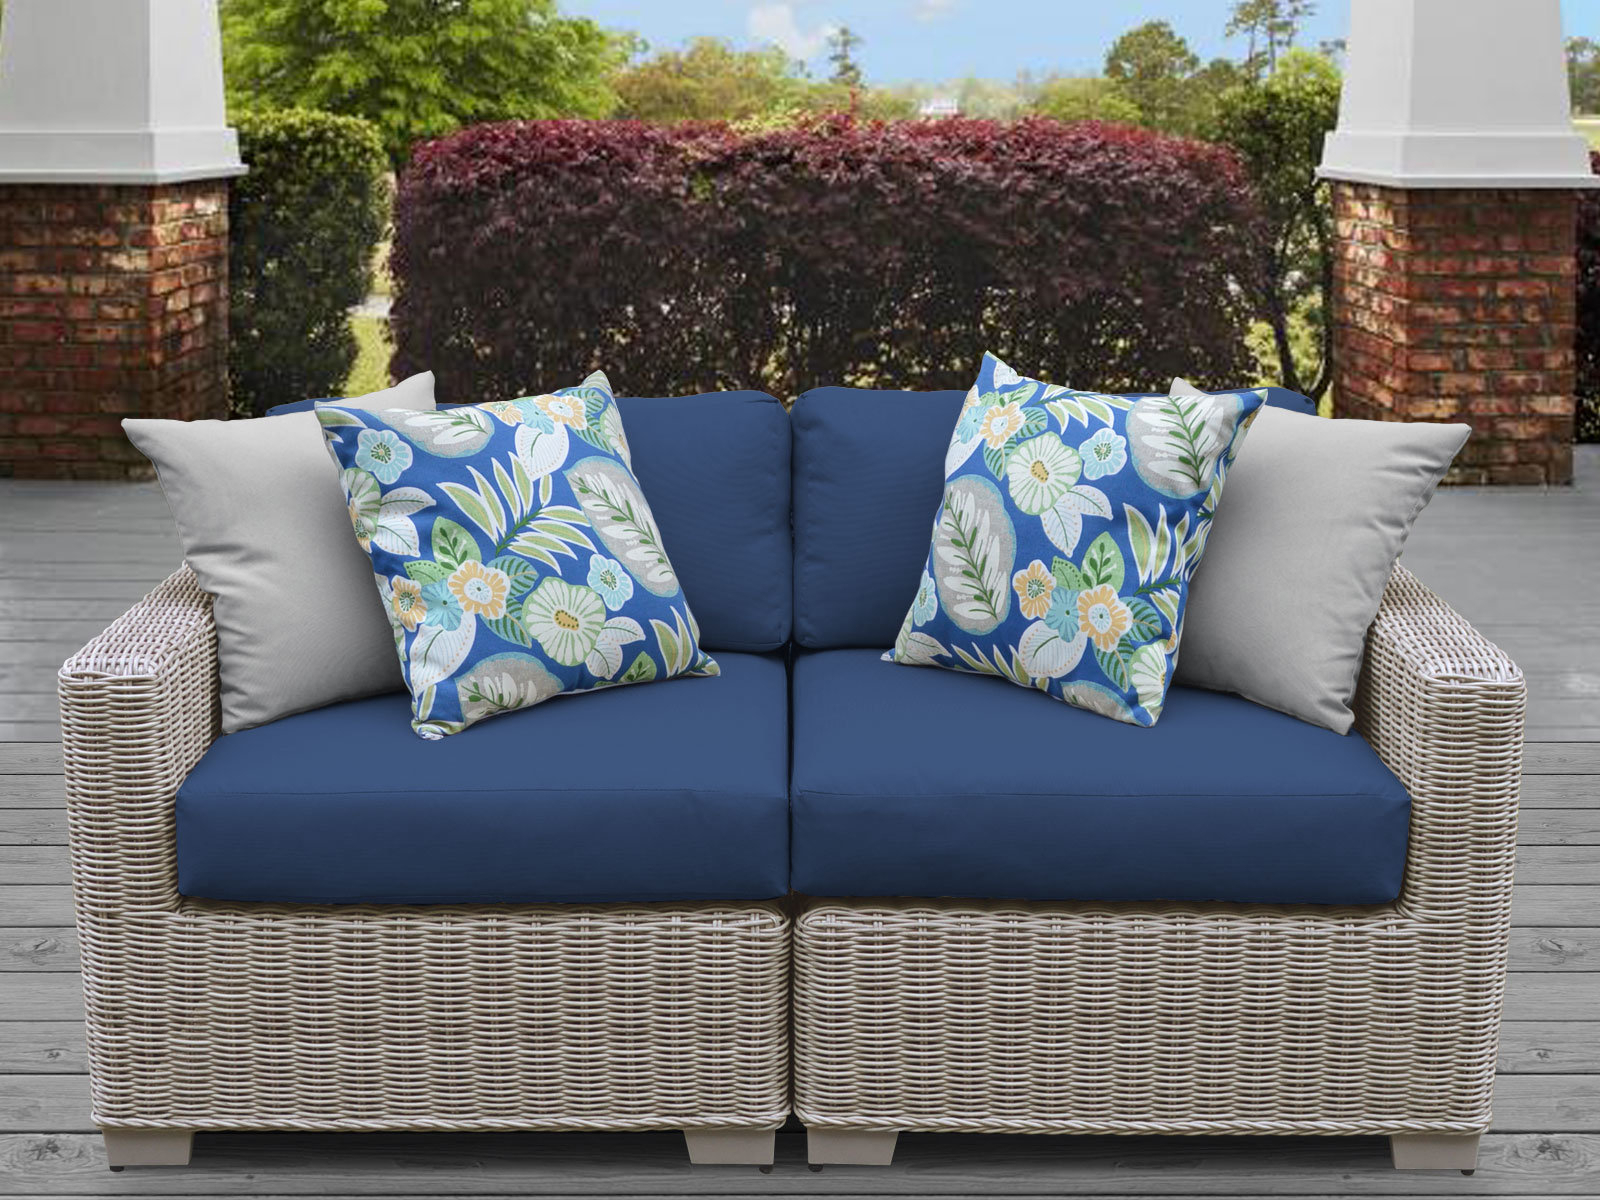 Most Recently Released Loggins Loveseats With Cushions Pertaining To Claire Loveseat With Cushions (View 15 of 20)